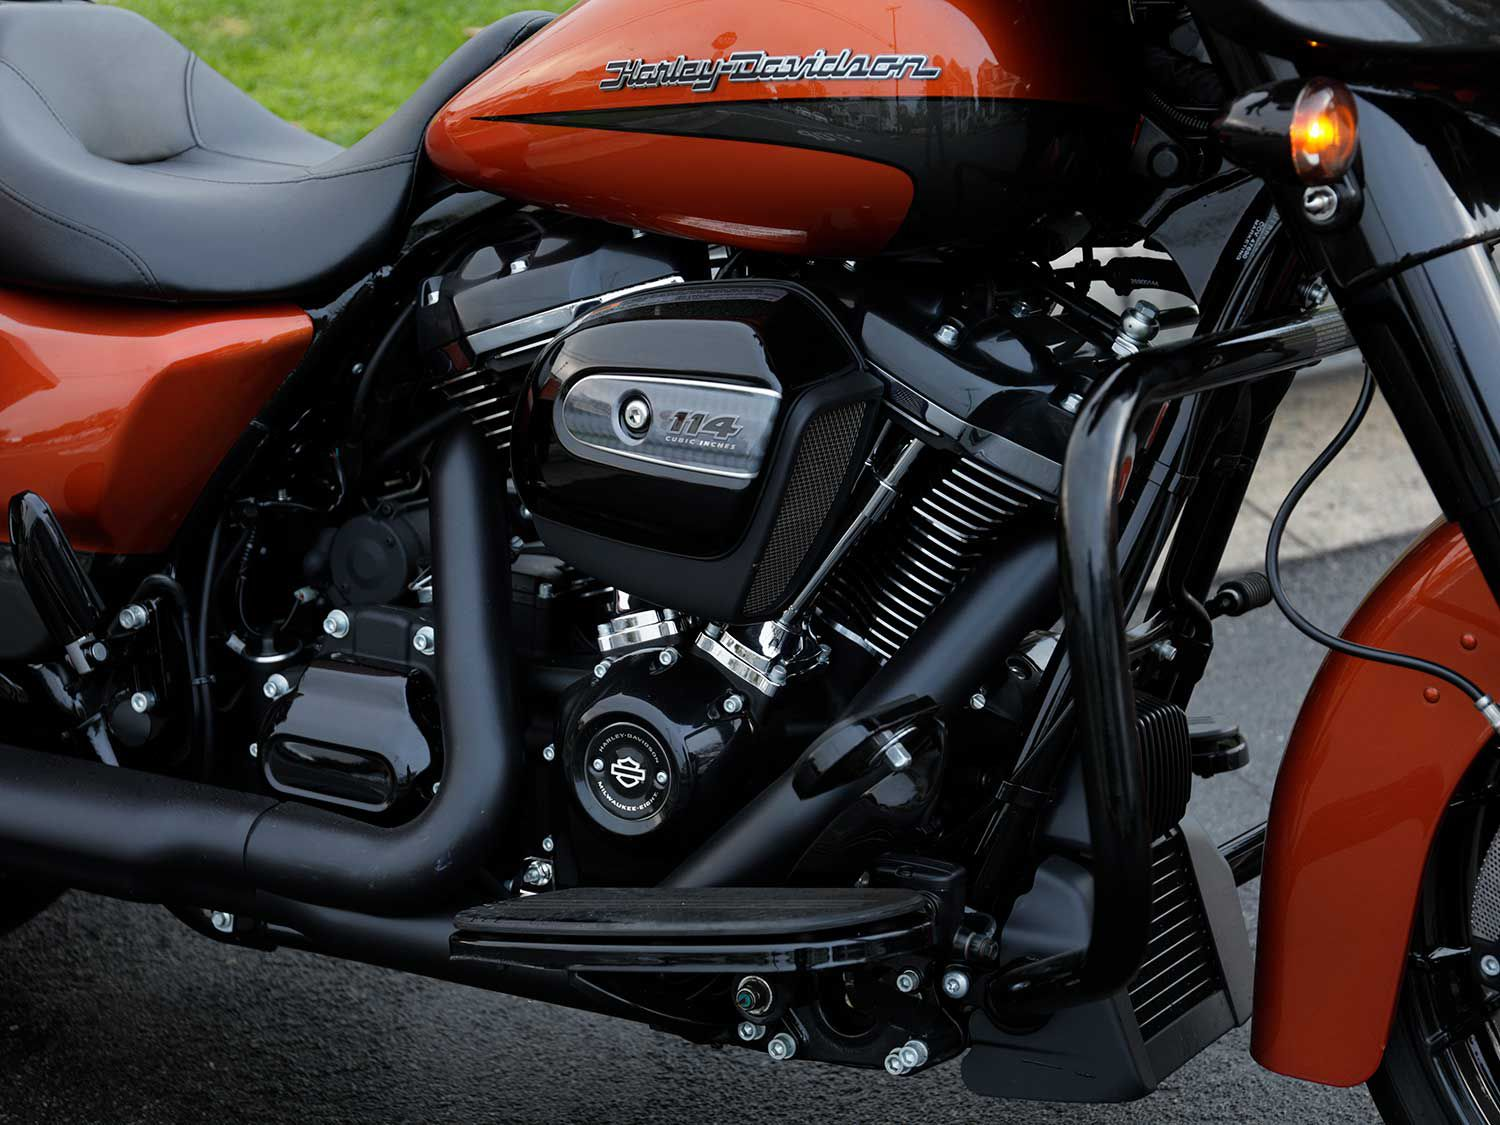 American muscle. The 2020 Street Glide Special gets Harley's 114-cubic-inch Milwaukee-Eight twin, good for nearly 111 pound-feet of torque at the back Dunlop.